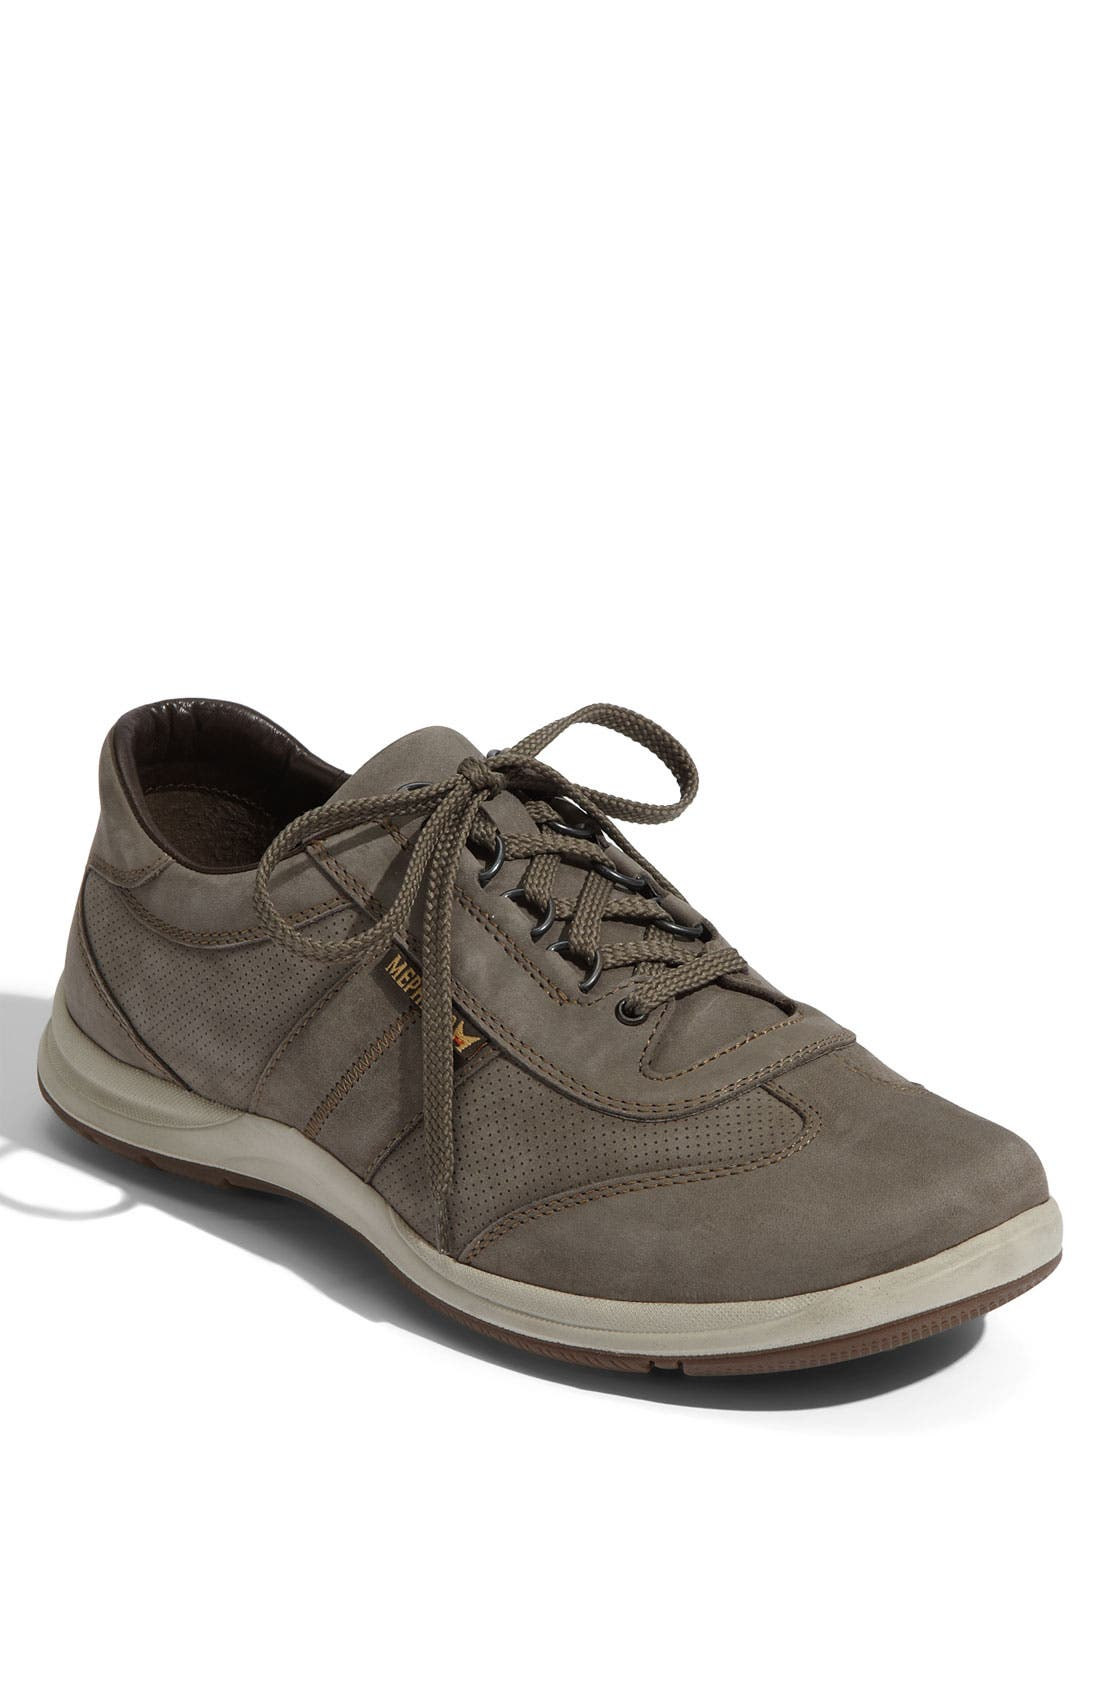 'Hike' Perforated Walking Shoe,                         Main,                         color, 020